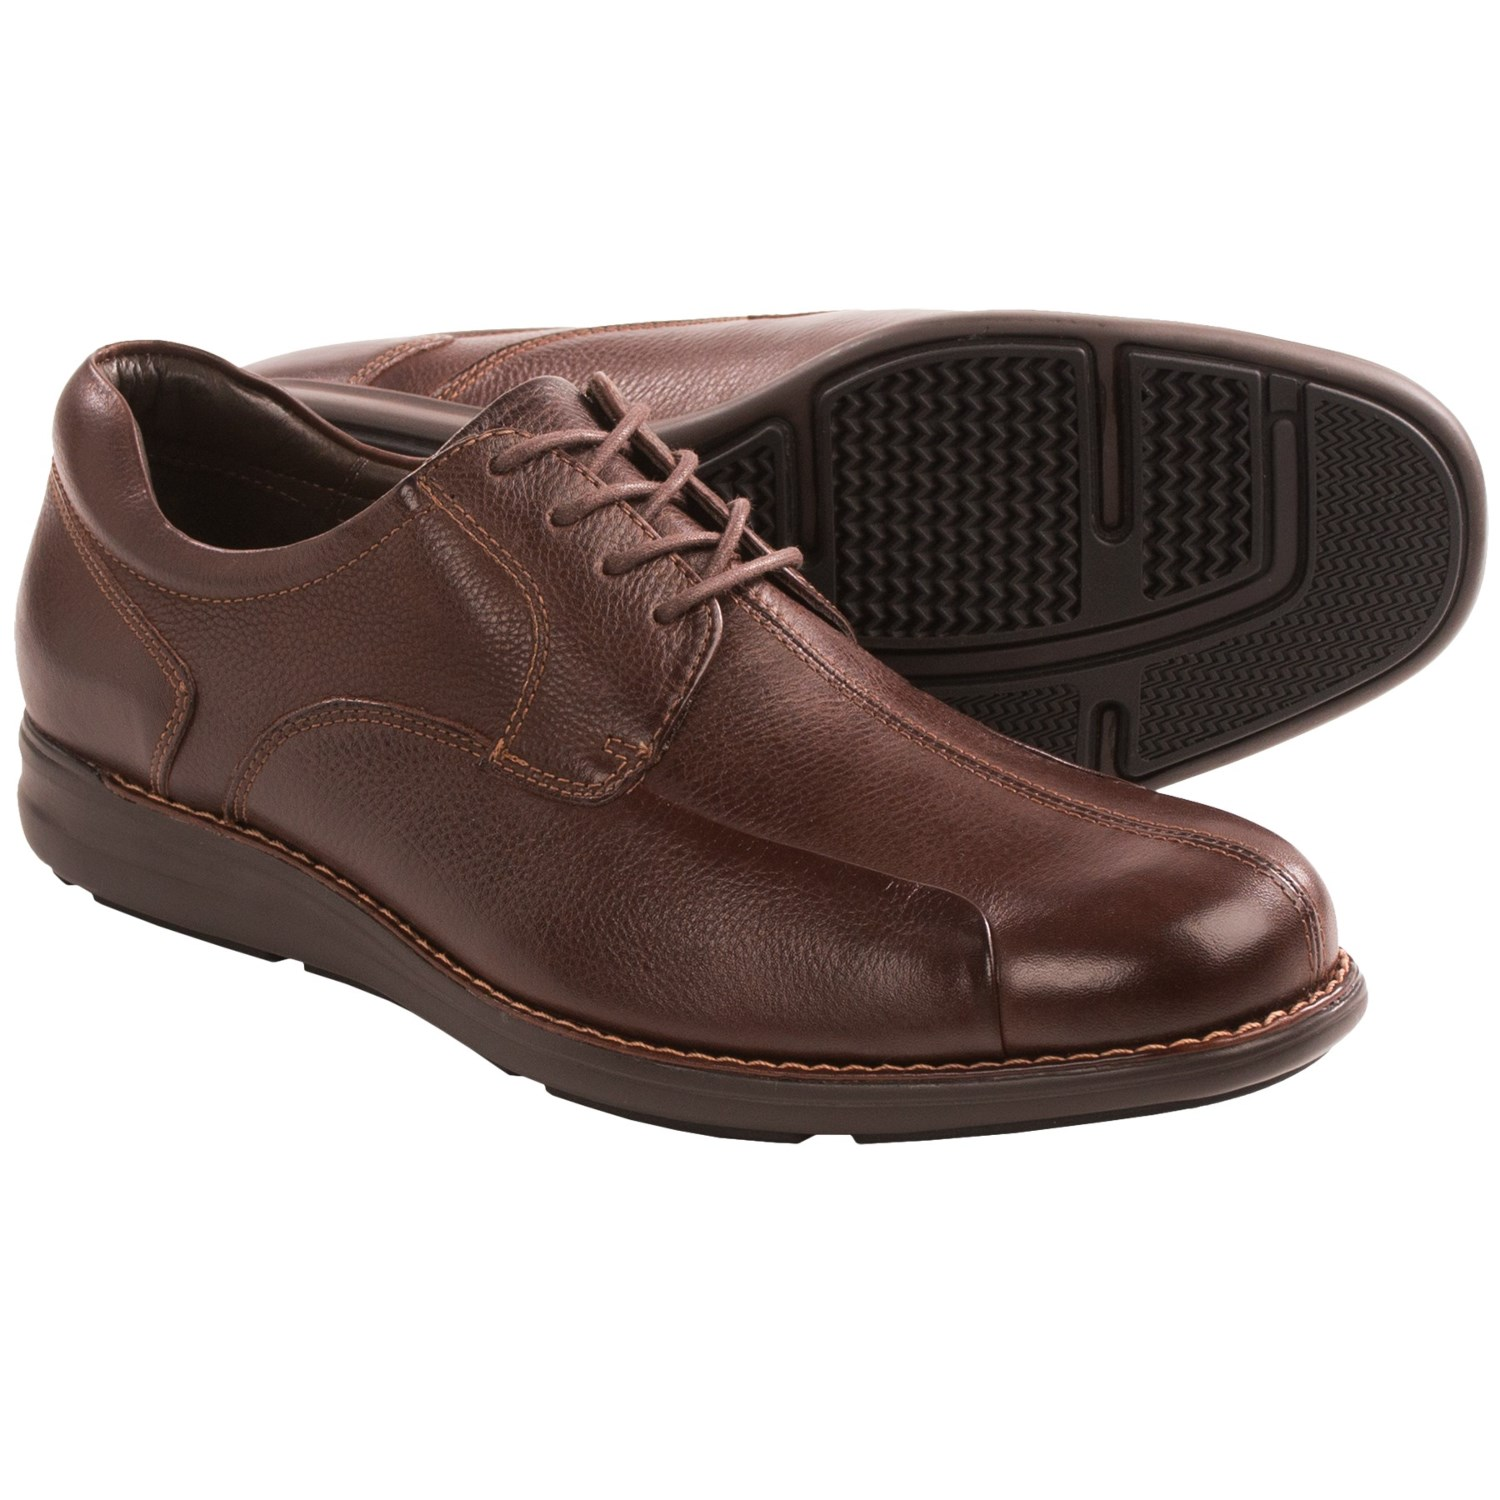 Bike Oxford Shoes Bike Shoes Oxfords